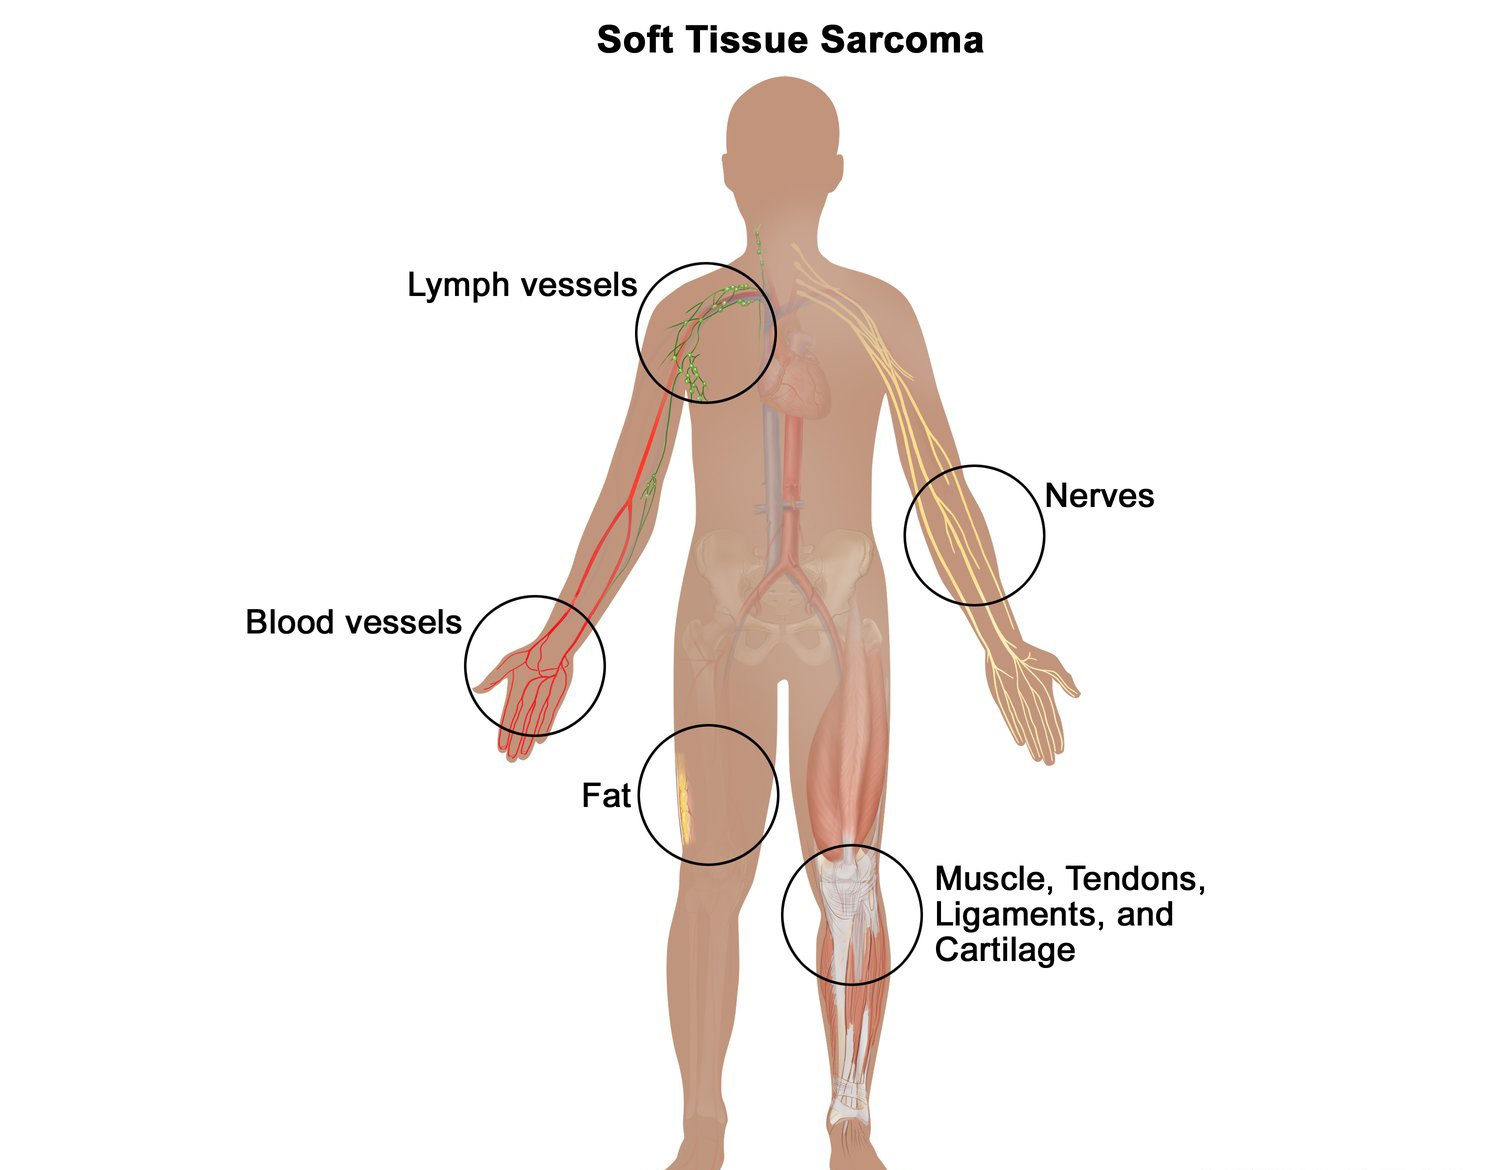 Sarcoma – A Life Threatening Cancer